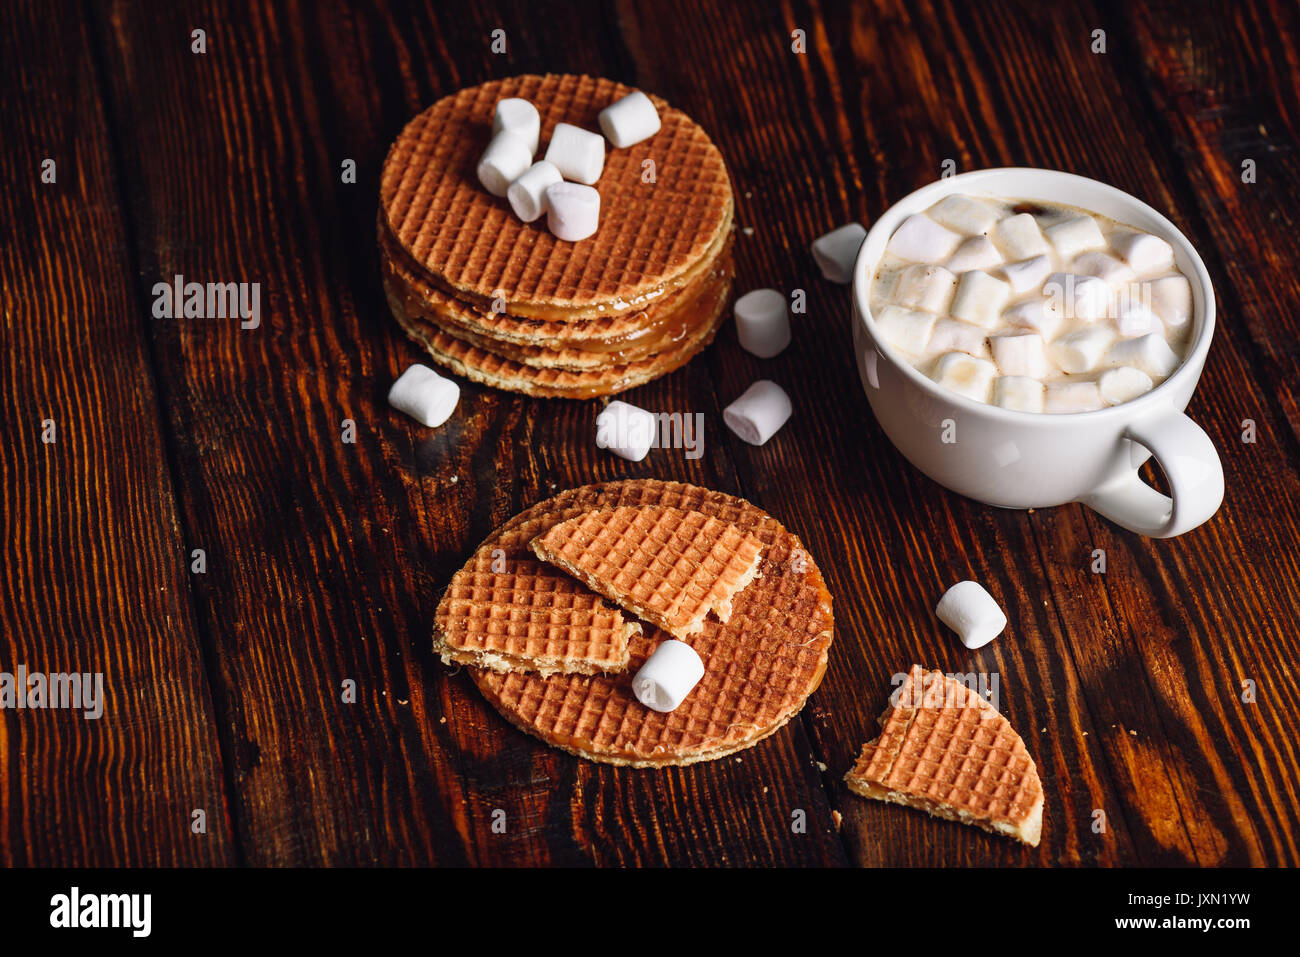 Stroopwafel with Broken One with White Cup of Cocoa with Marshmallow and Waffle Stack. Copy Space on the Left. - Stock Image